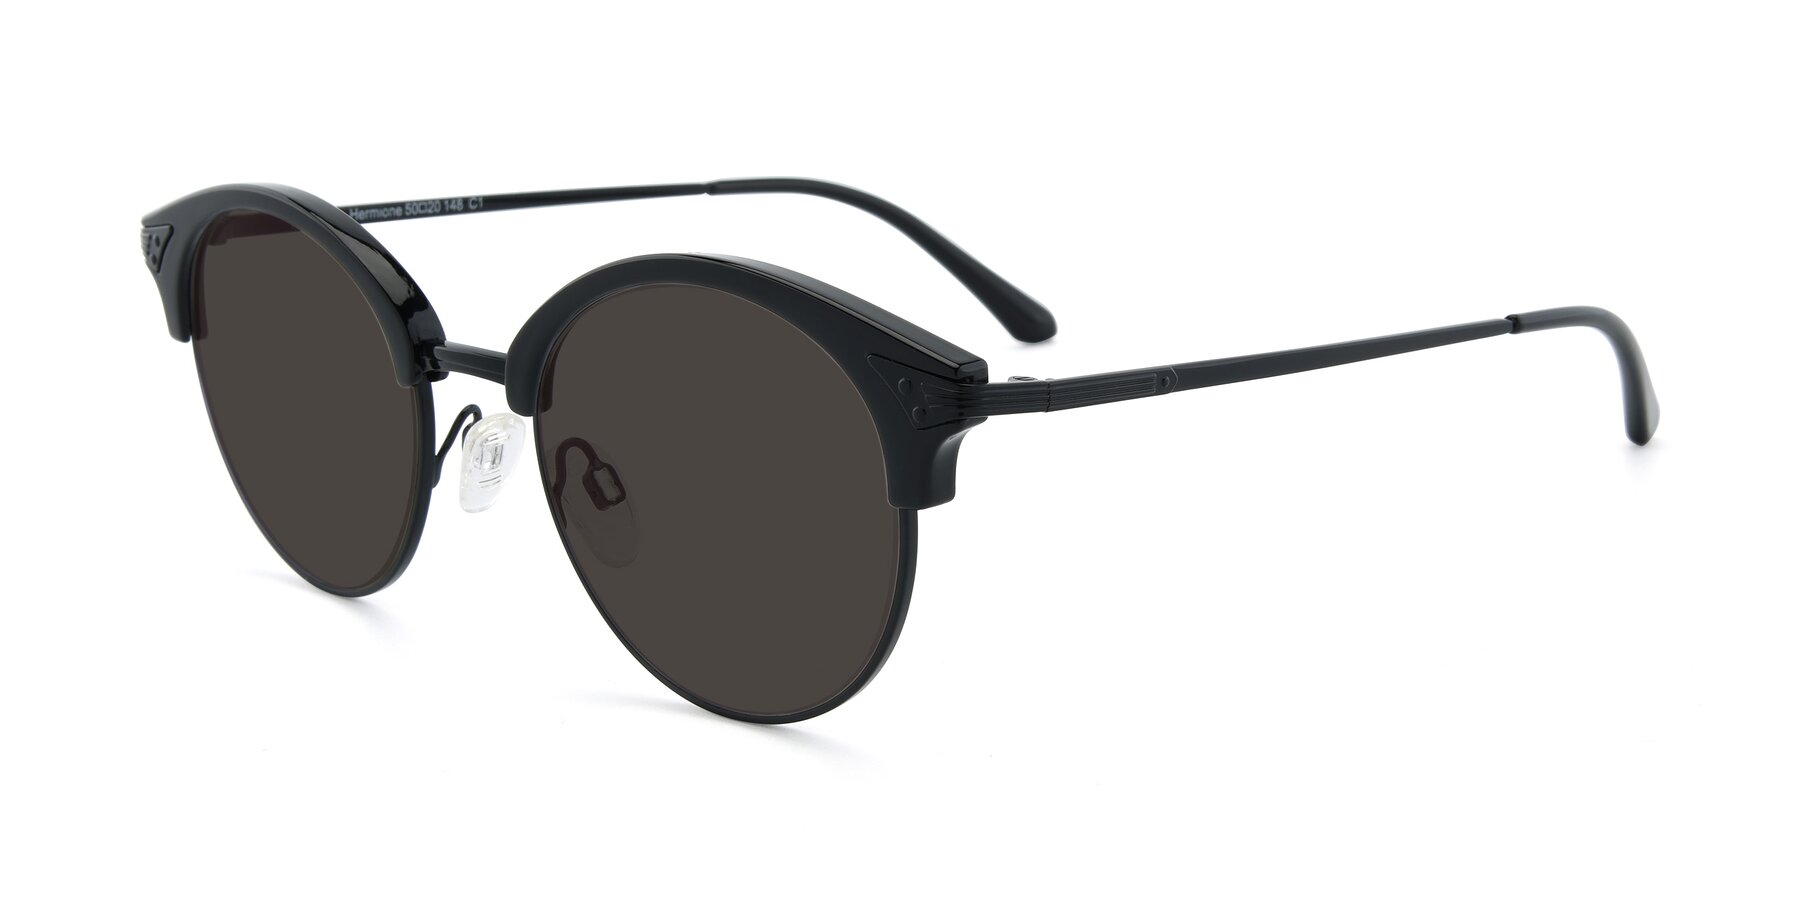 Angle of Hermione in Black with Gray Tinted Lenses